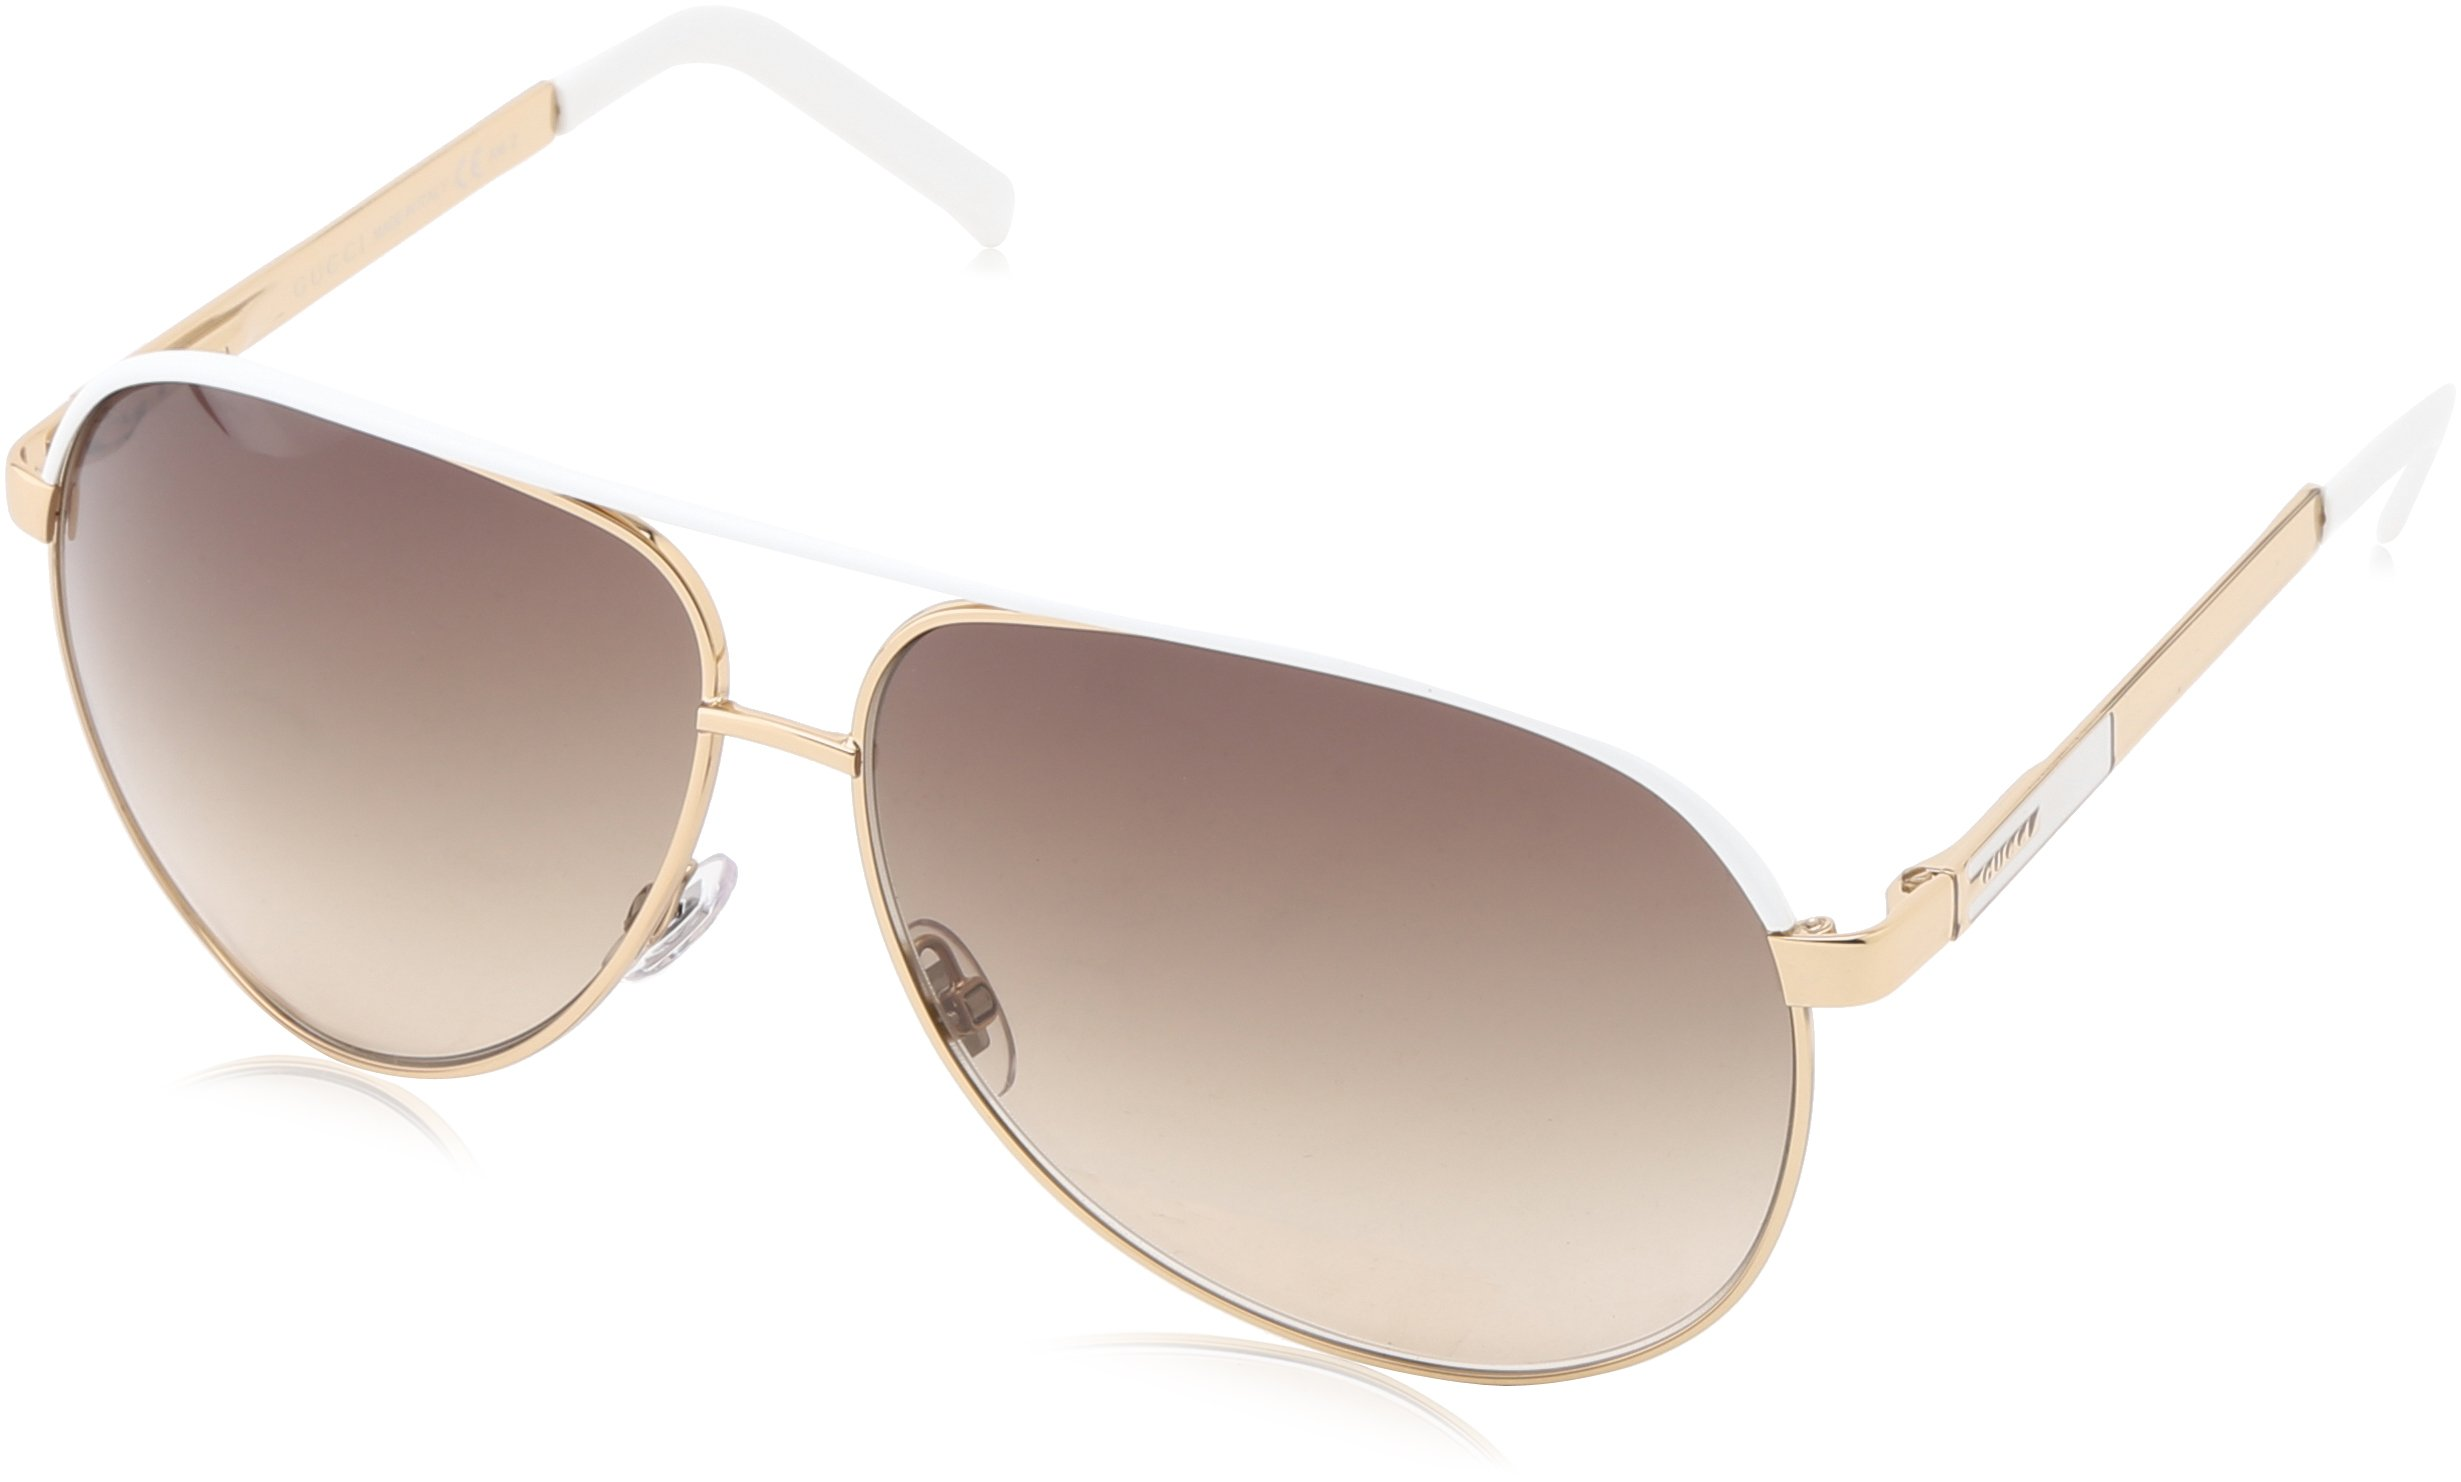 Gucci 1827/S Aviator Sunglasses,Gold Frame/Brown Grey Gradient Lens,One Size by Gucci